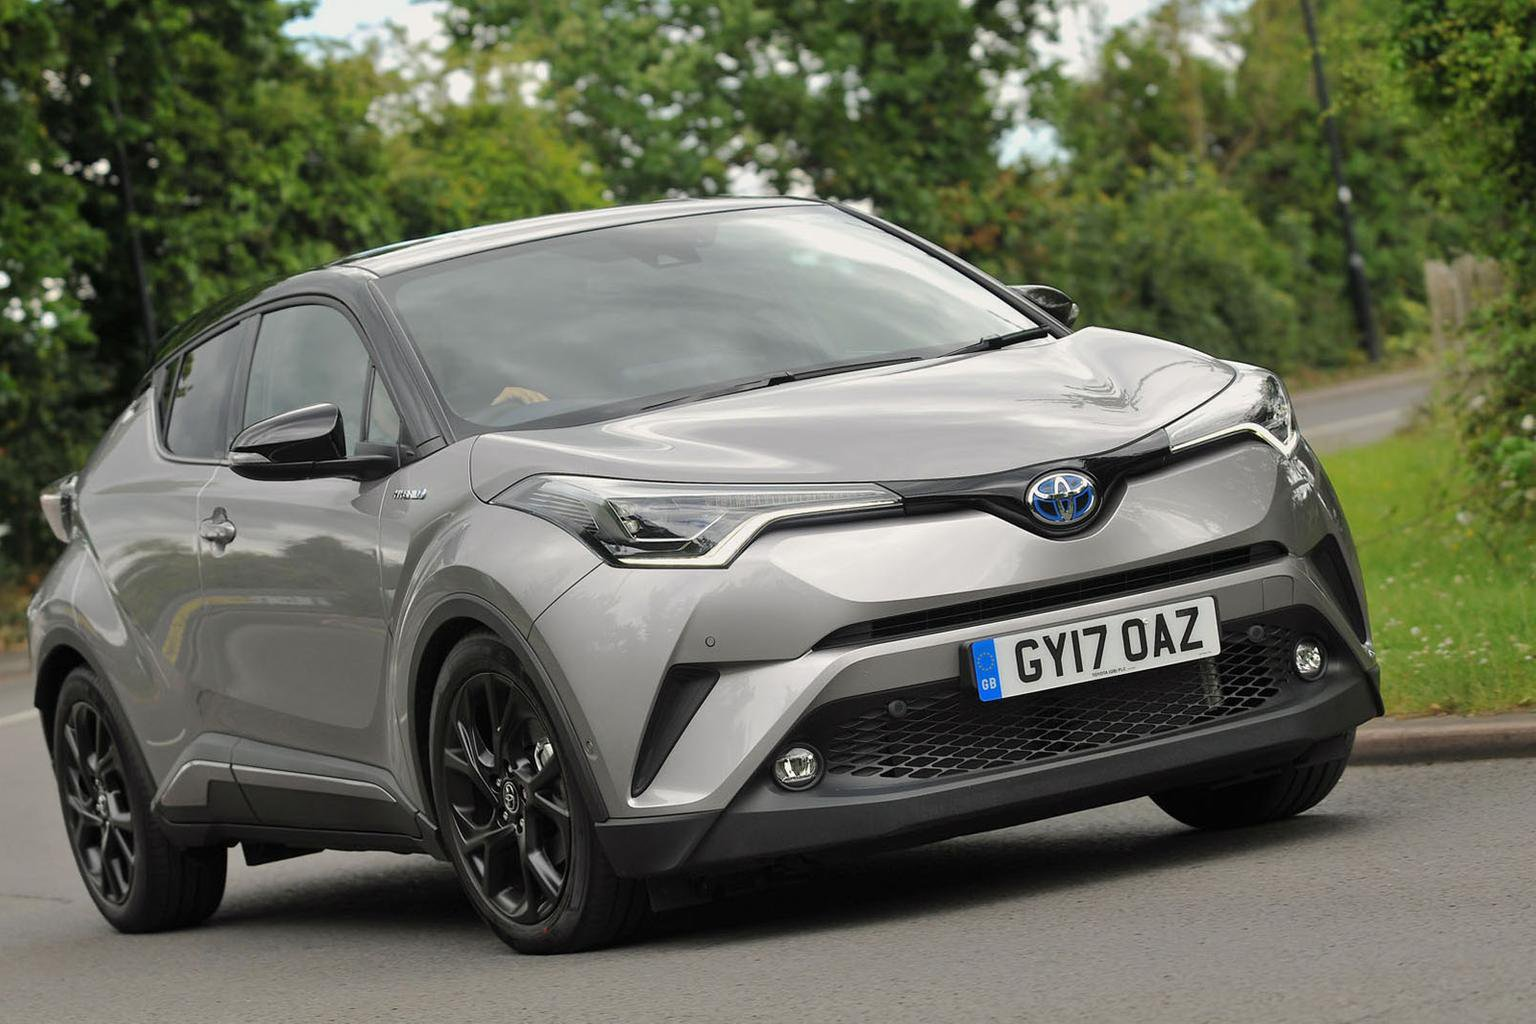 2017 Toyota C-HR Dynamic Hybrid Limited Edition review - price, specs and release date